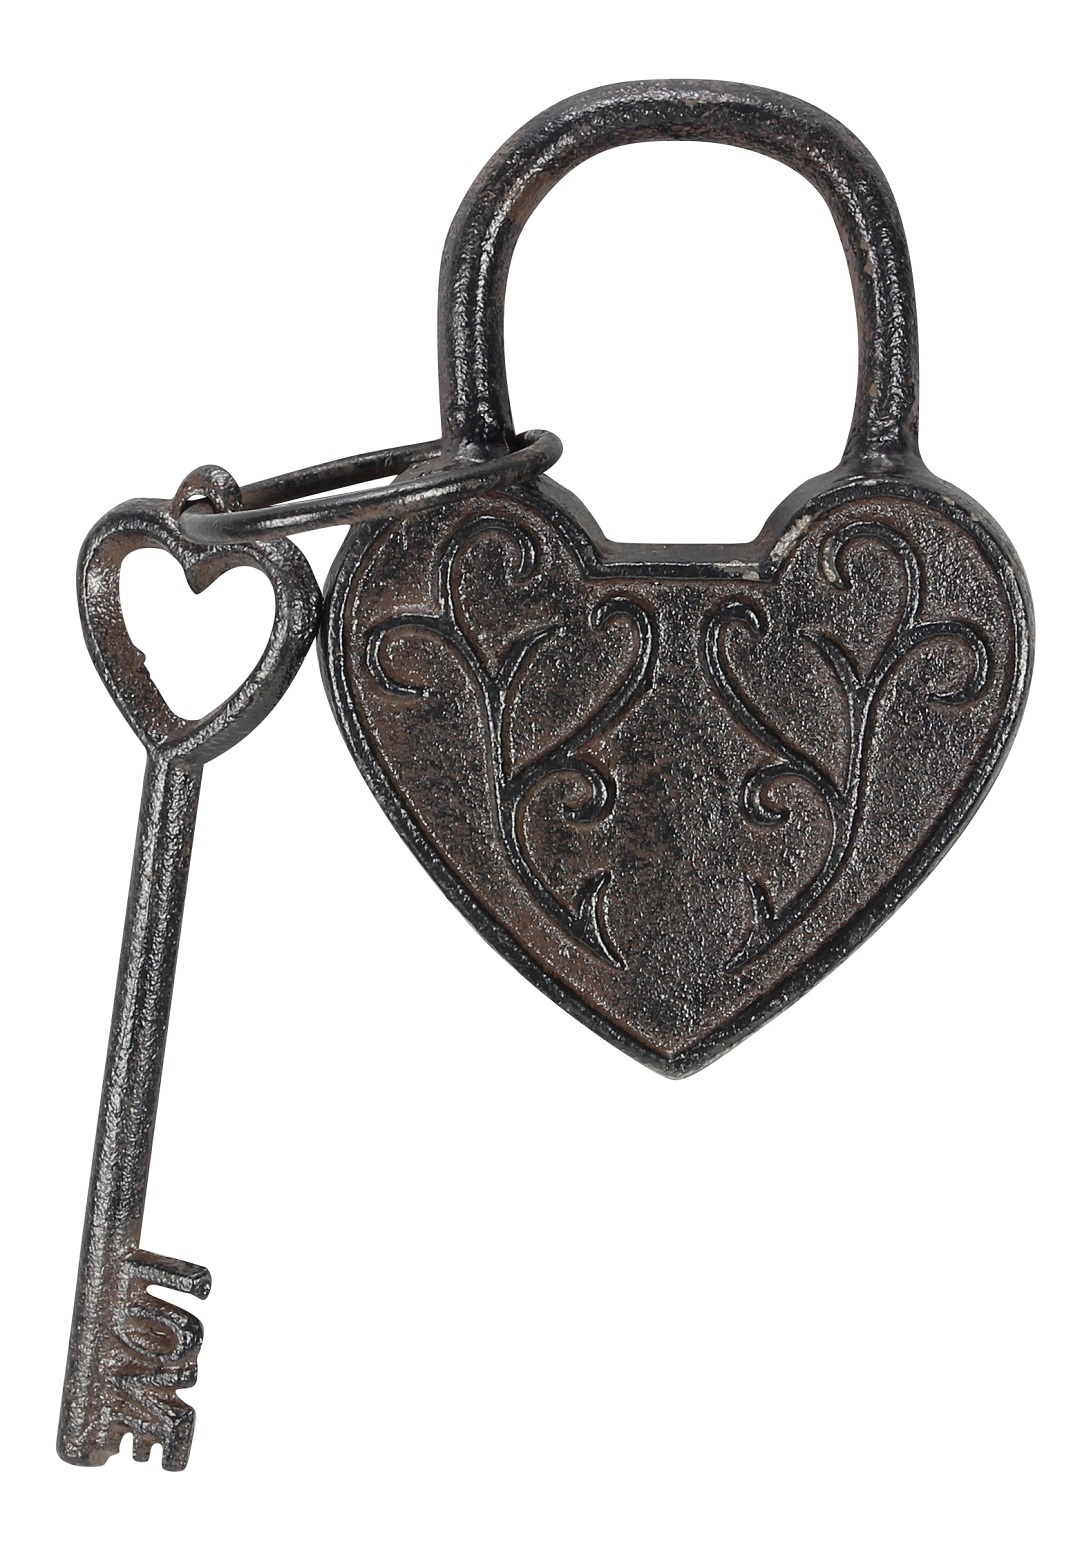 Heart shaped cast iron lock with love key tabletop decor for Lock and key decor